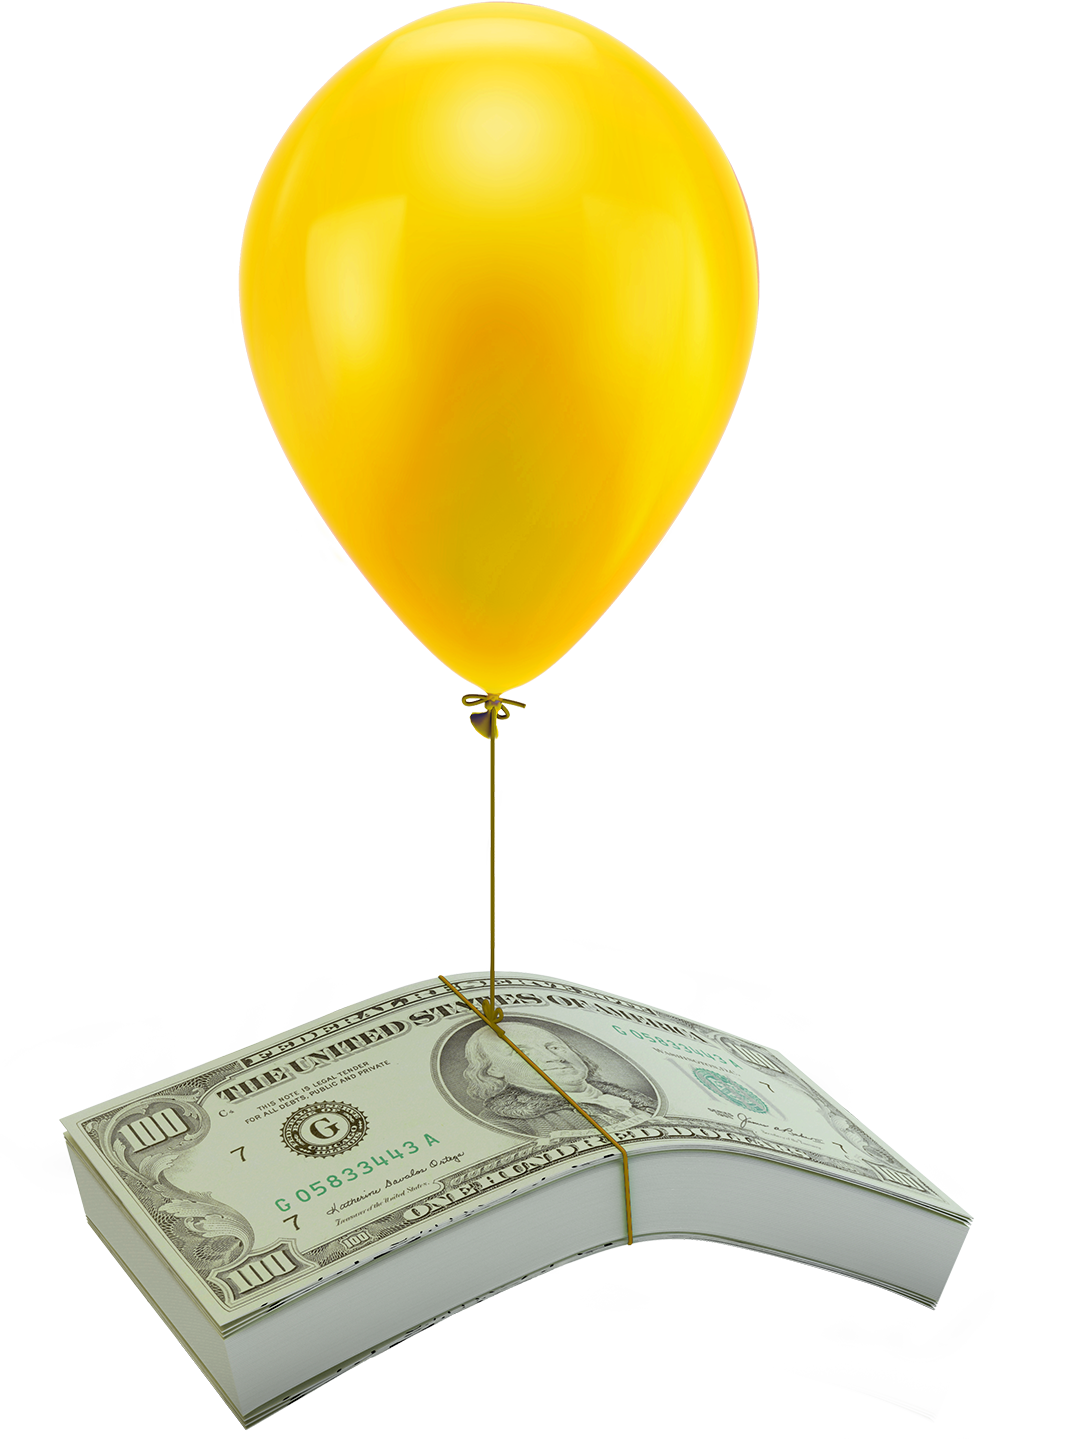 stack of cash floating from a balloon string